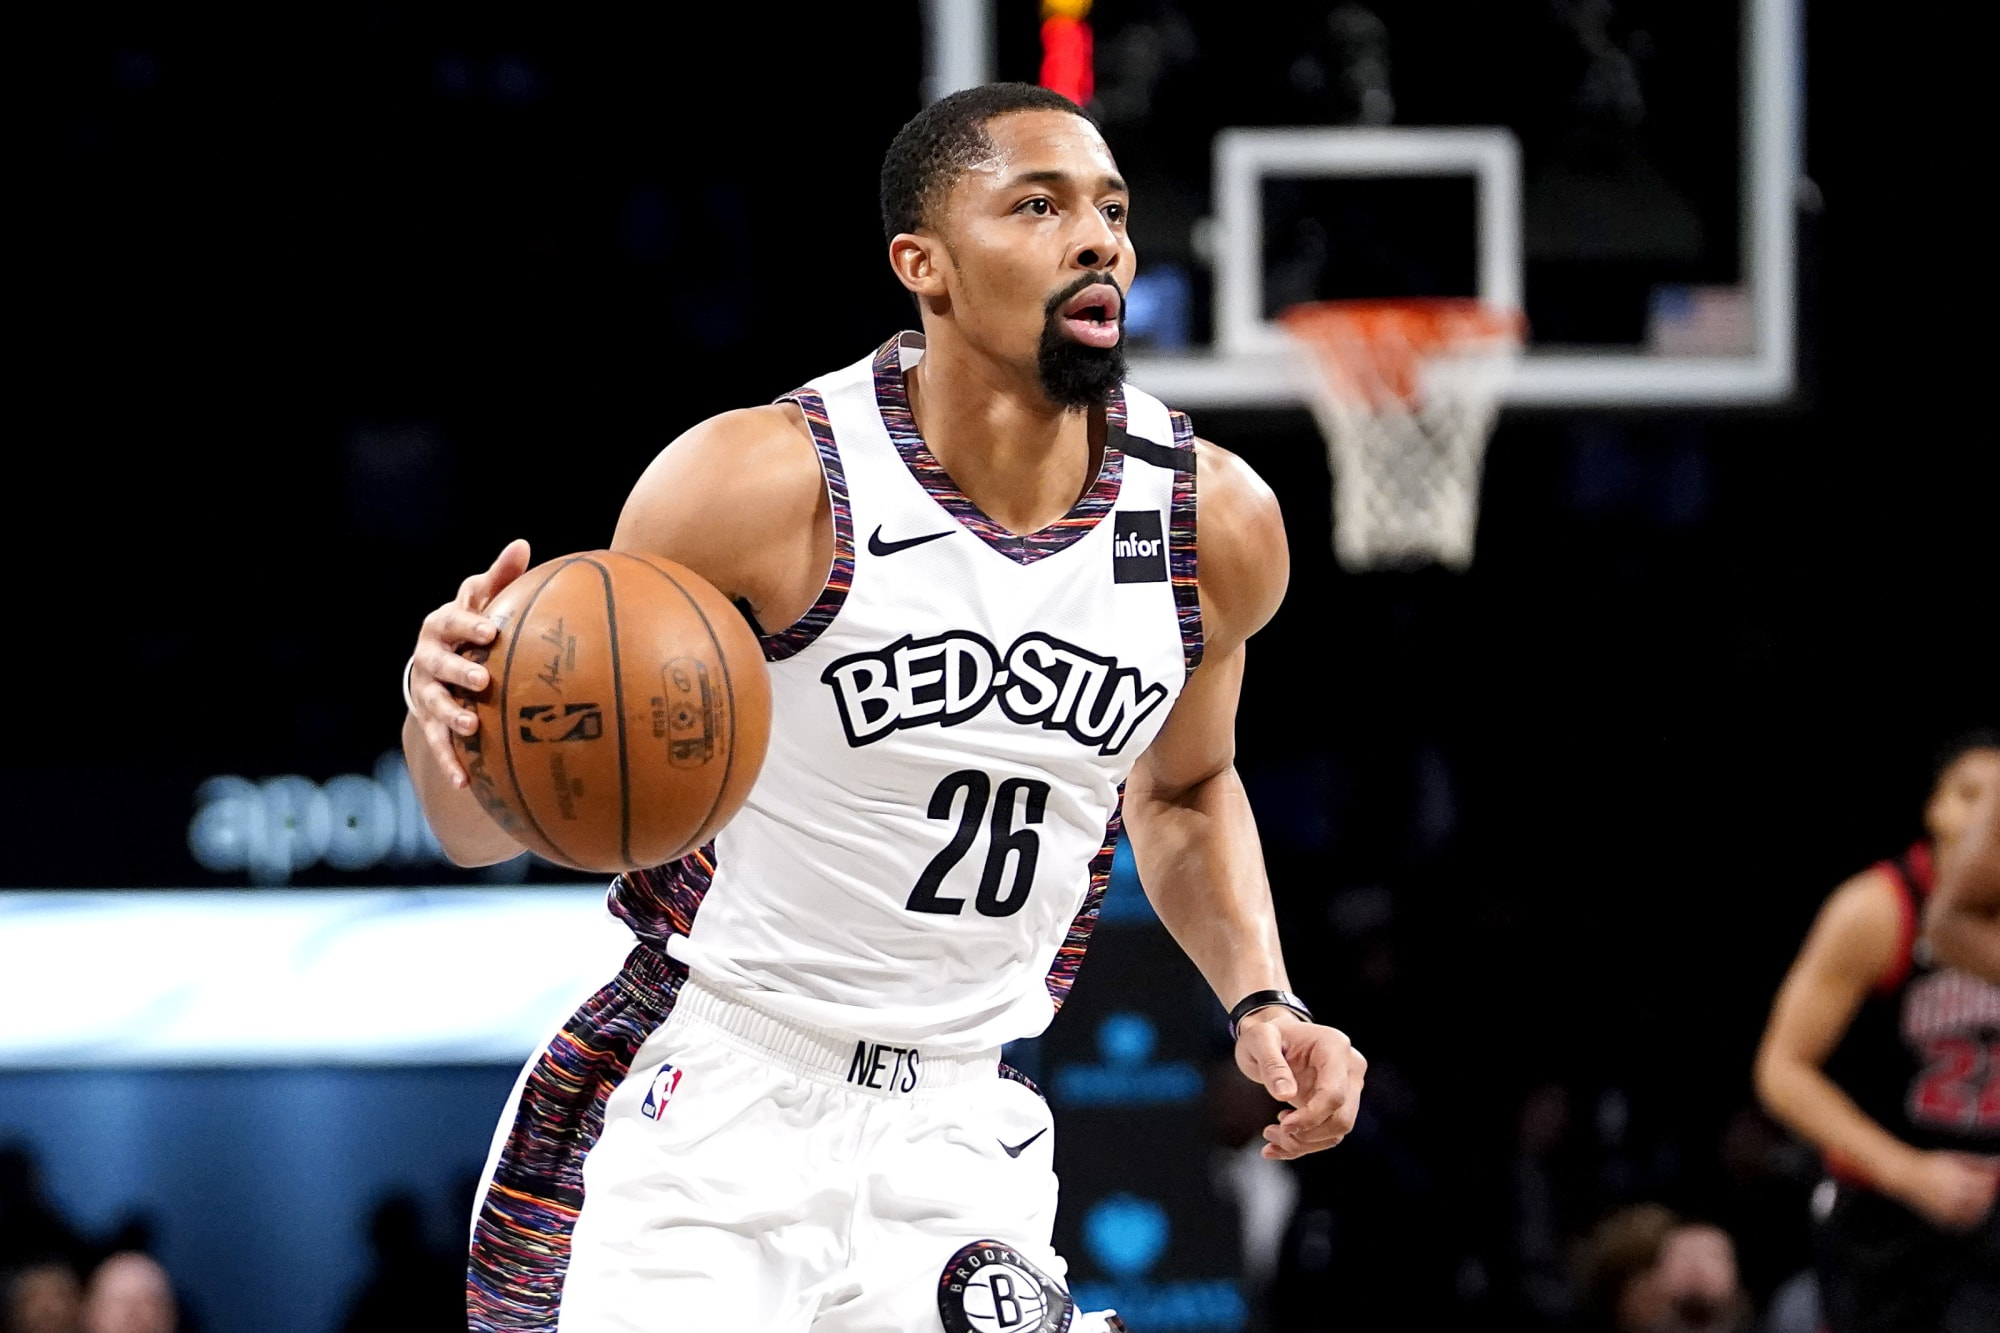 Brooklyn Nets: This Spencer Dinwiddie trade with Lakers could actually work